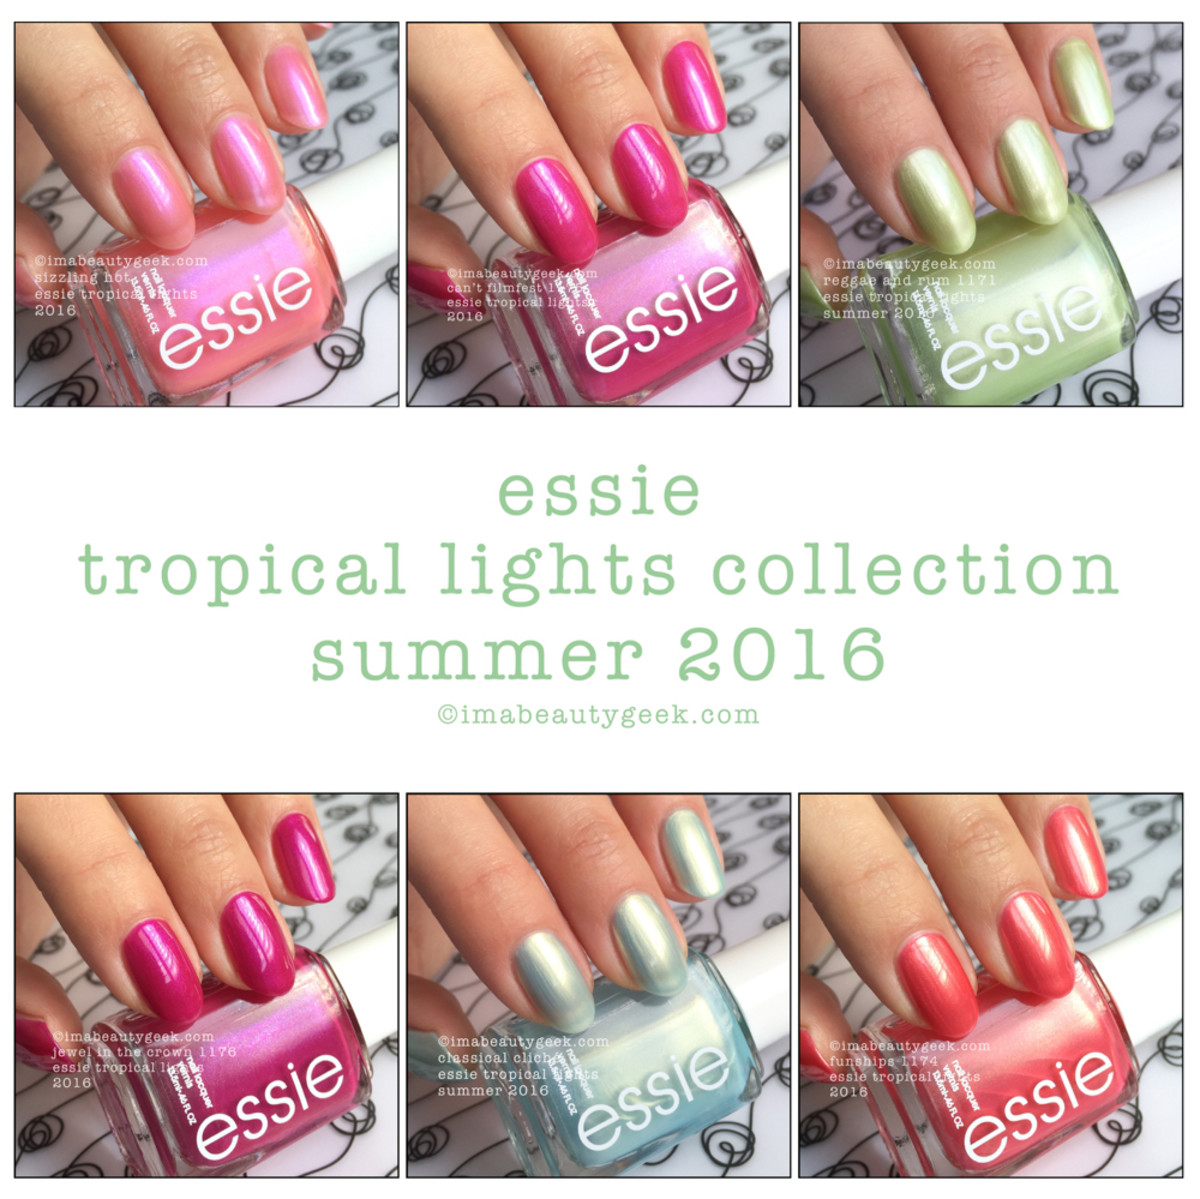 Essie Tropical Lights Collection Swatches Review 2016